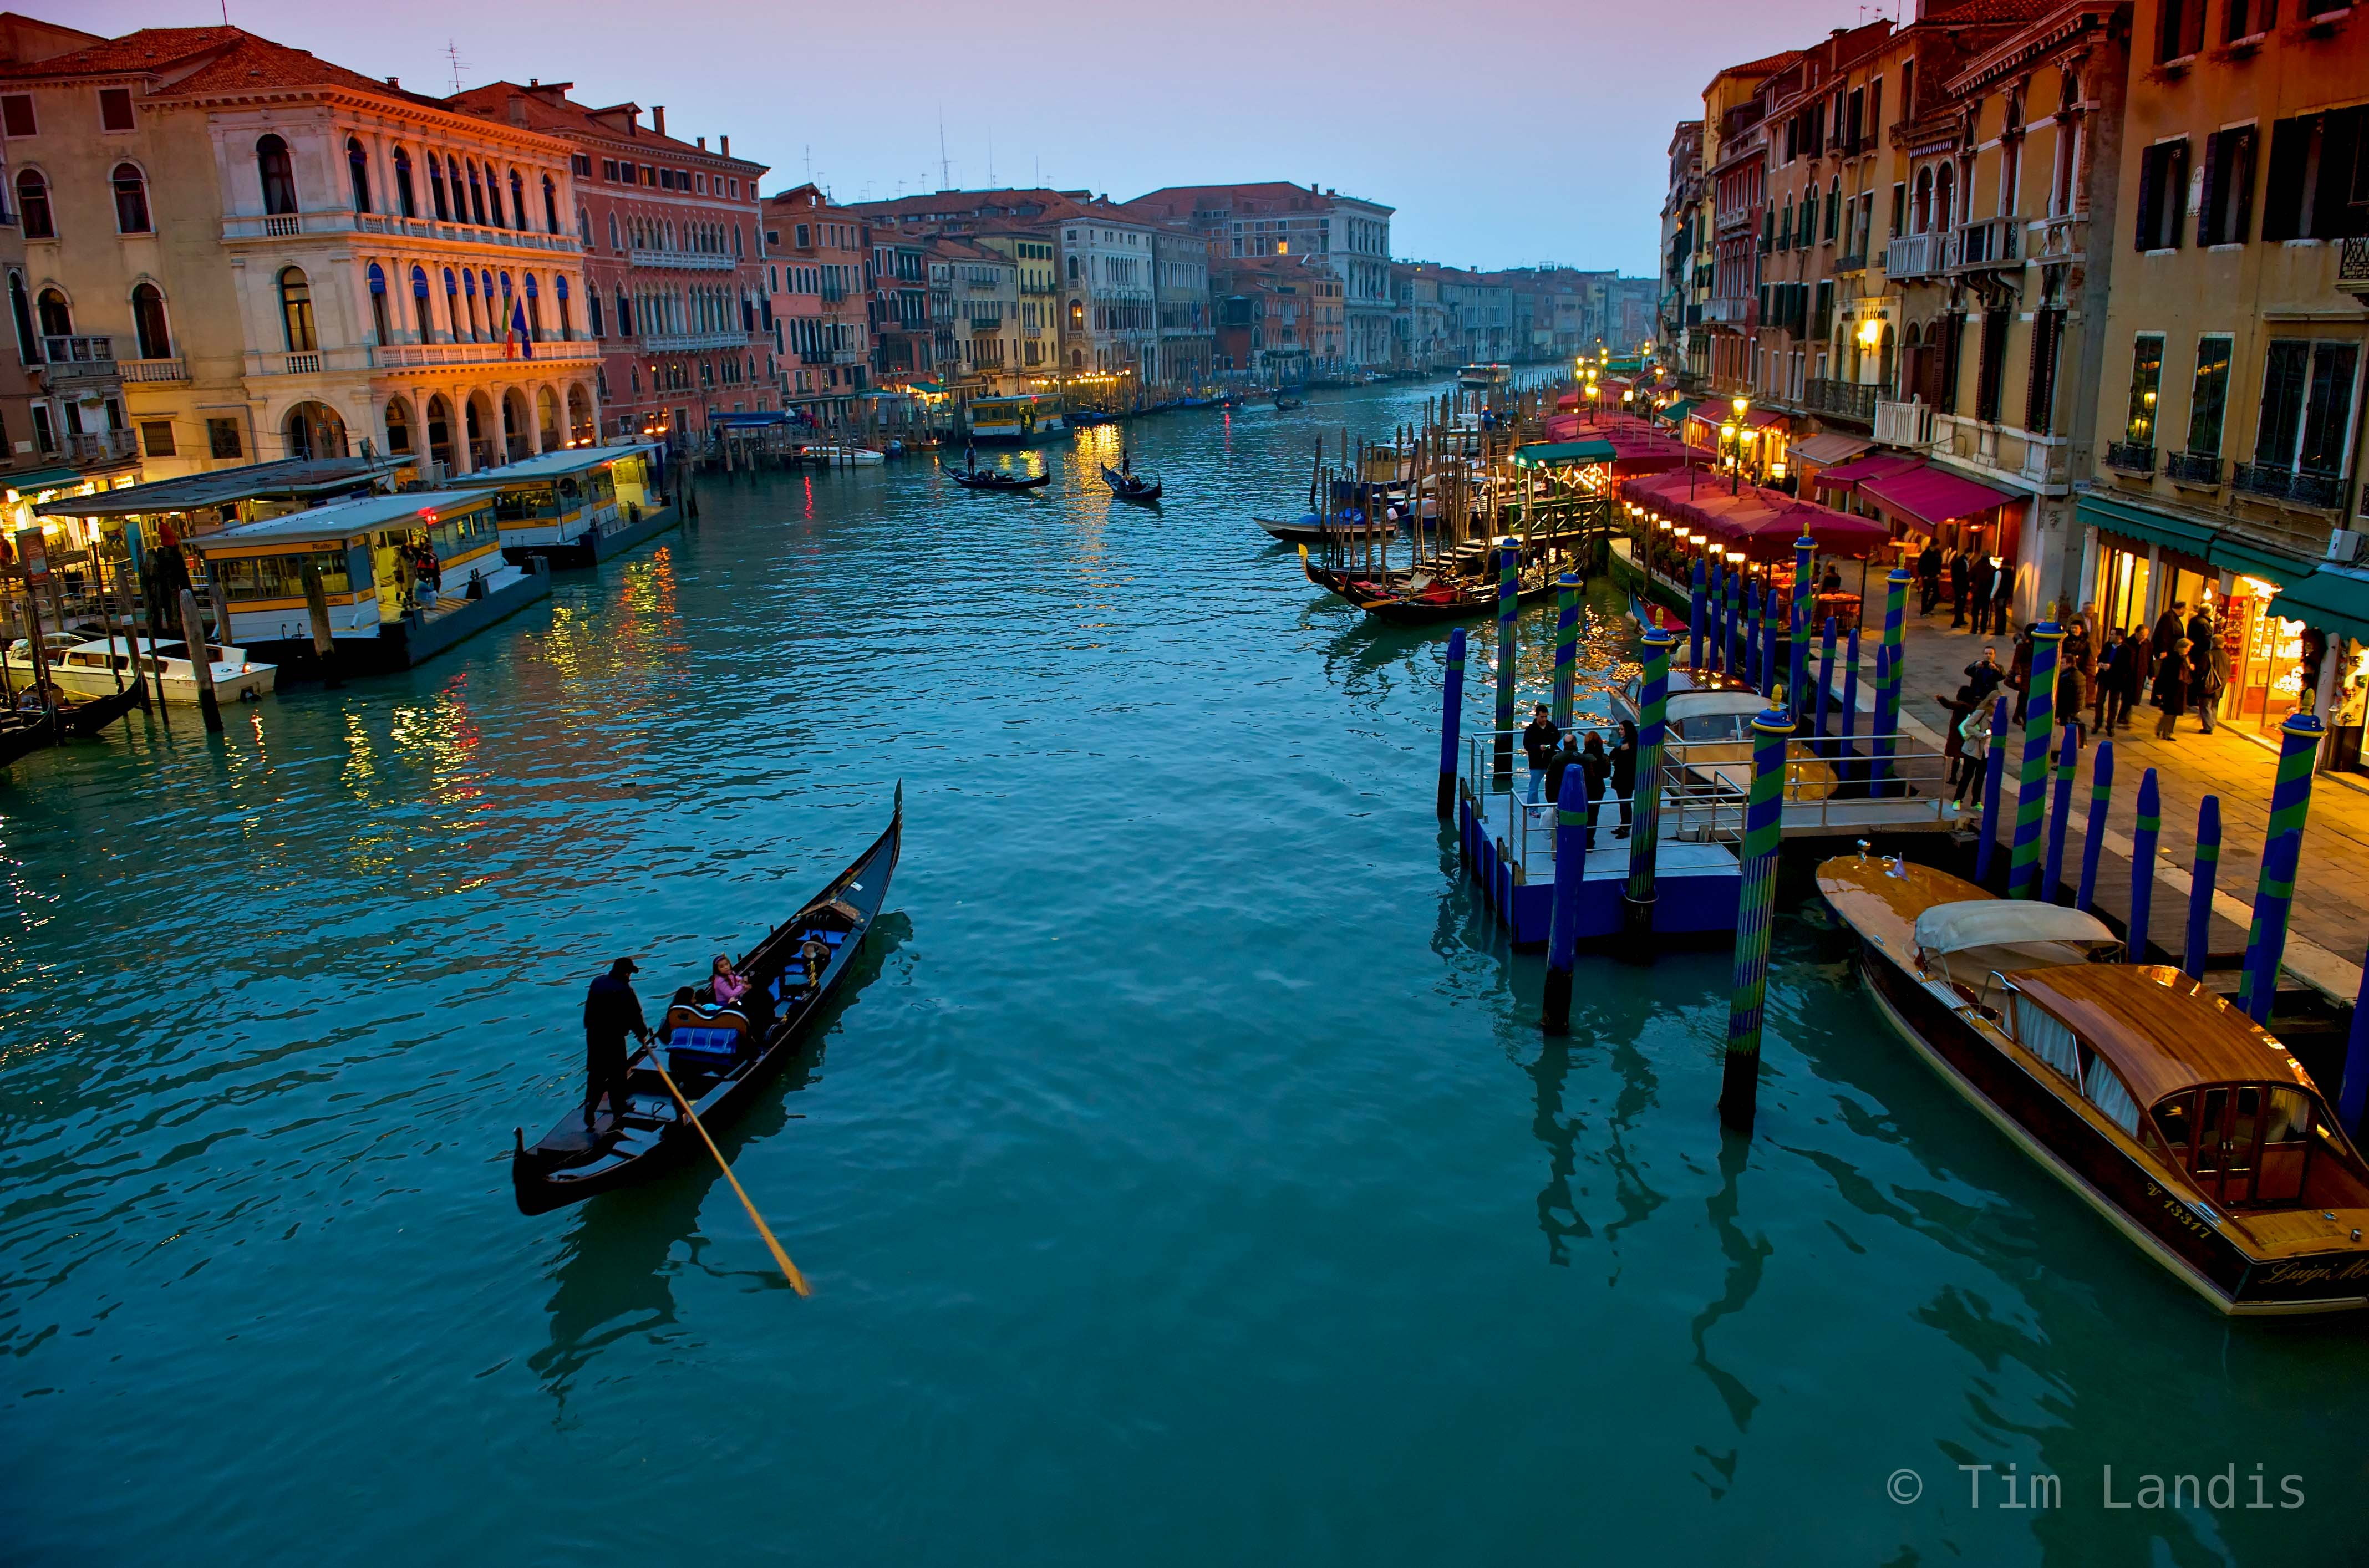 lone gondola meanders along the grand canal after sunset